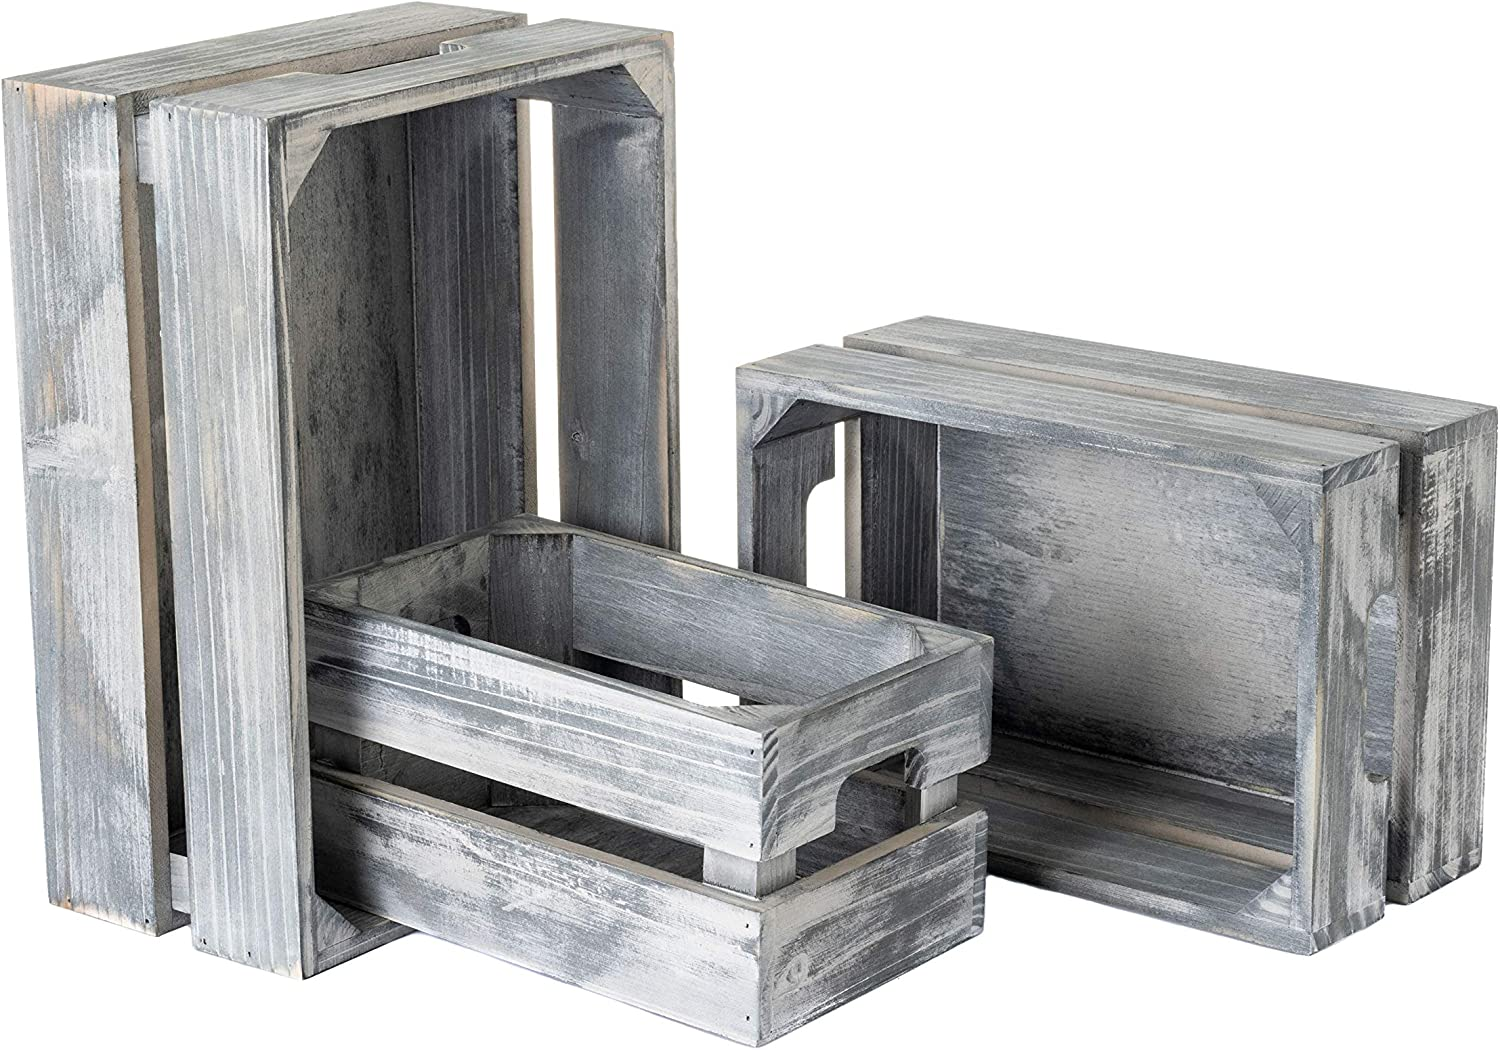 Strova Gray Nesting Wood Crates, Set of 3, Farmhouse Home Decor and Kitchen and Living Room Storage Organizers, Store Dried Food Goods, Supplies, Vinyl LP Records or Books